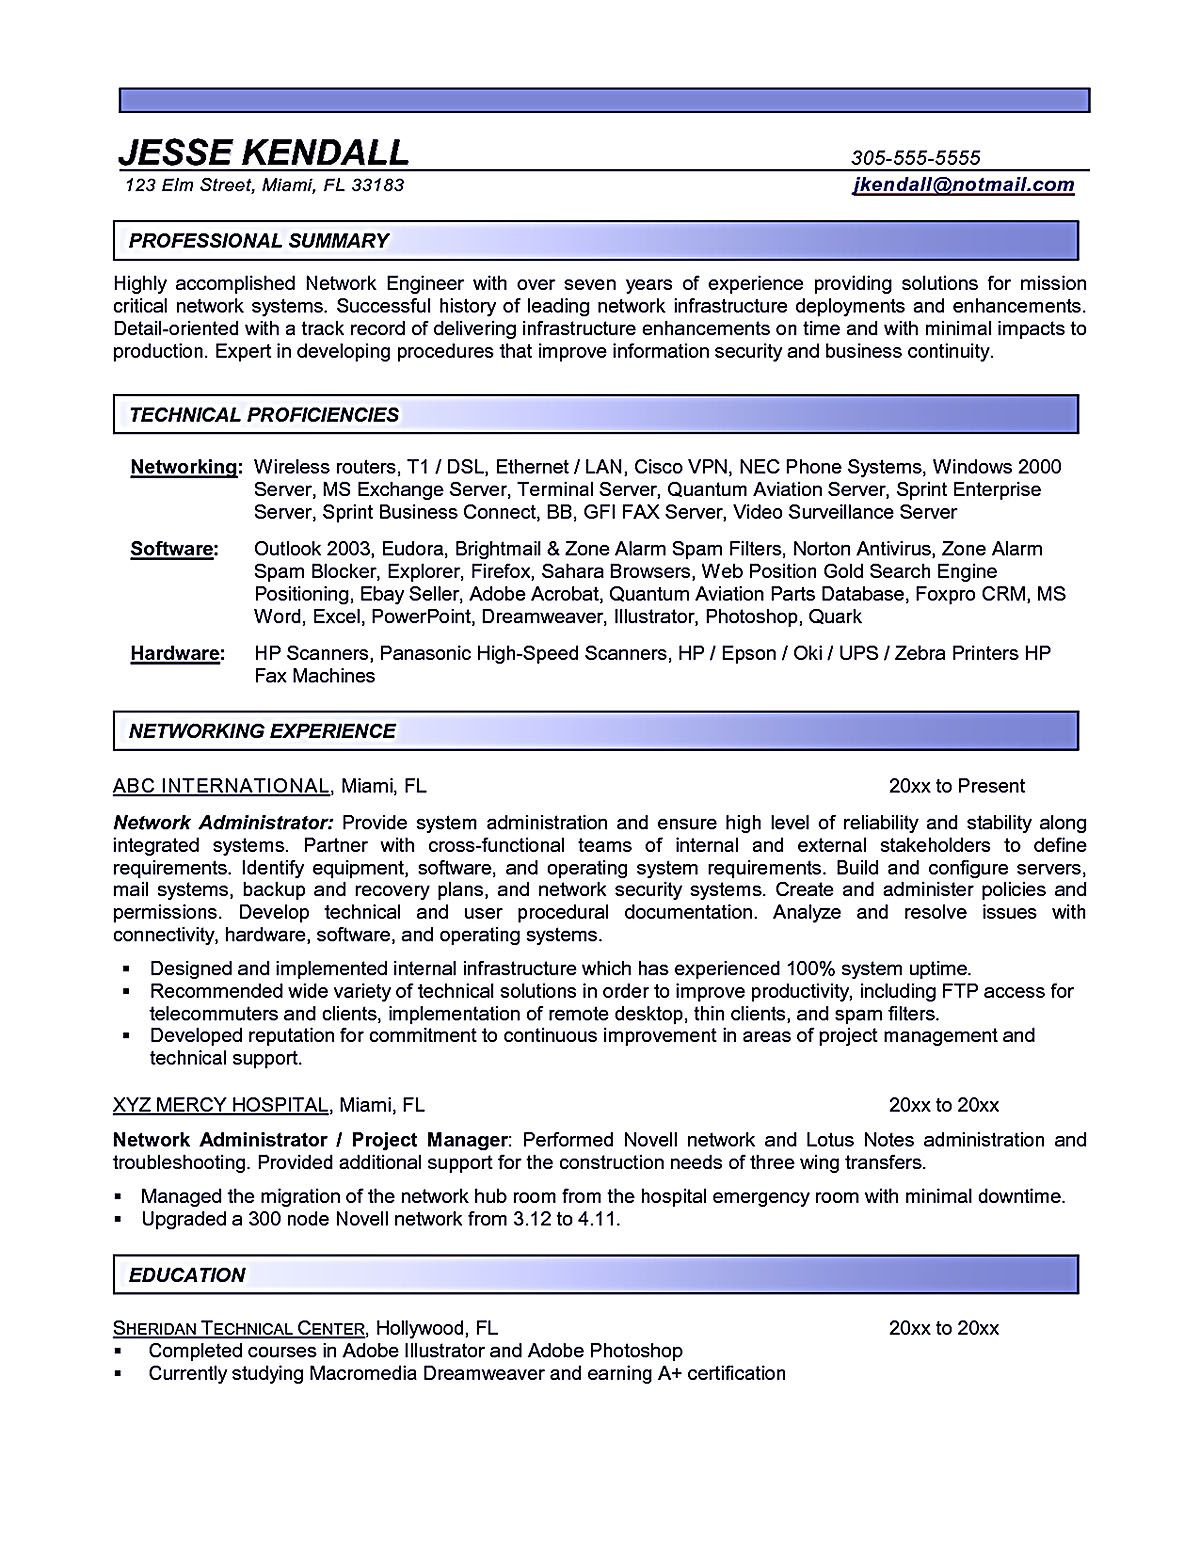 Account Receivable Resume Mesmerizing Account Receivable Resume Shows Both Technical And Interpersonal .